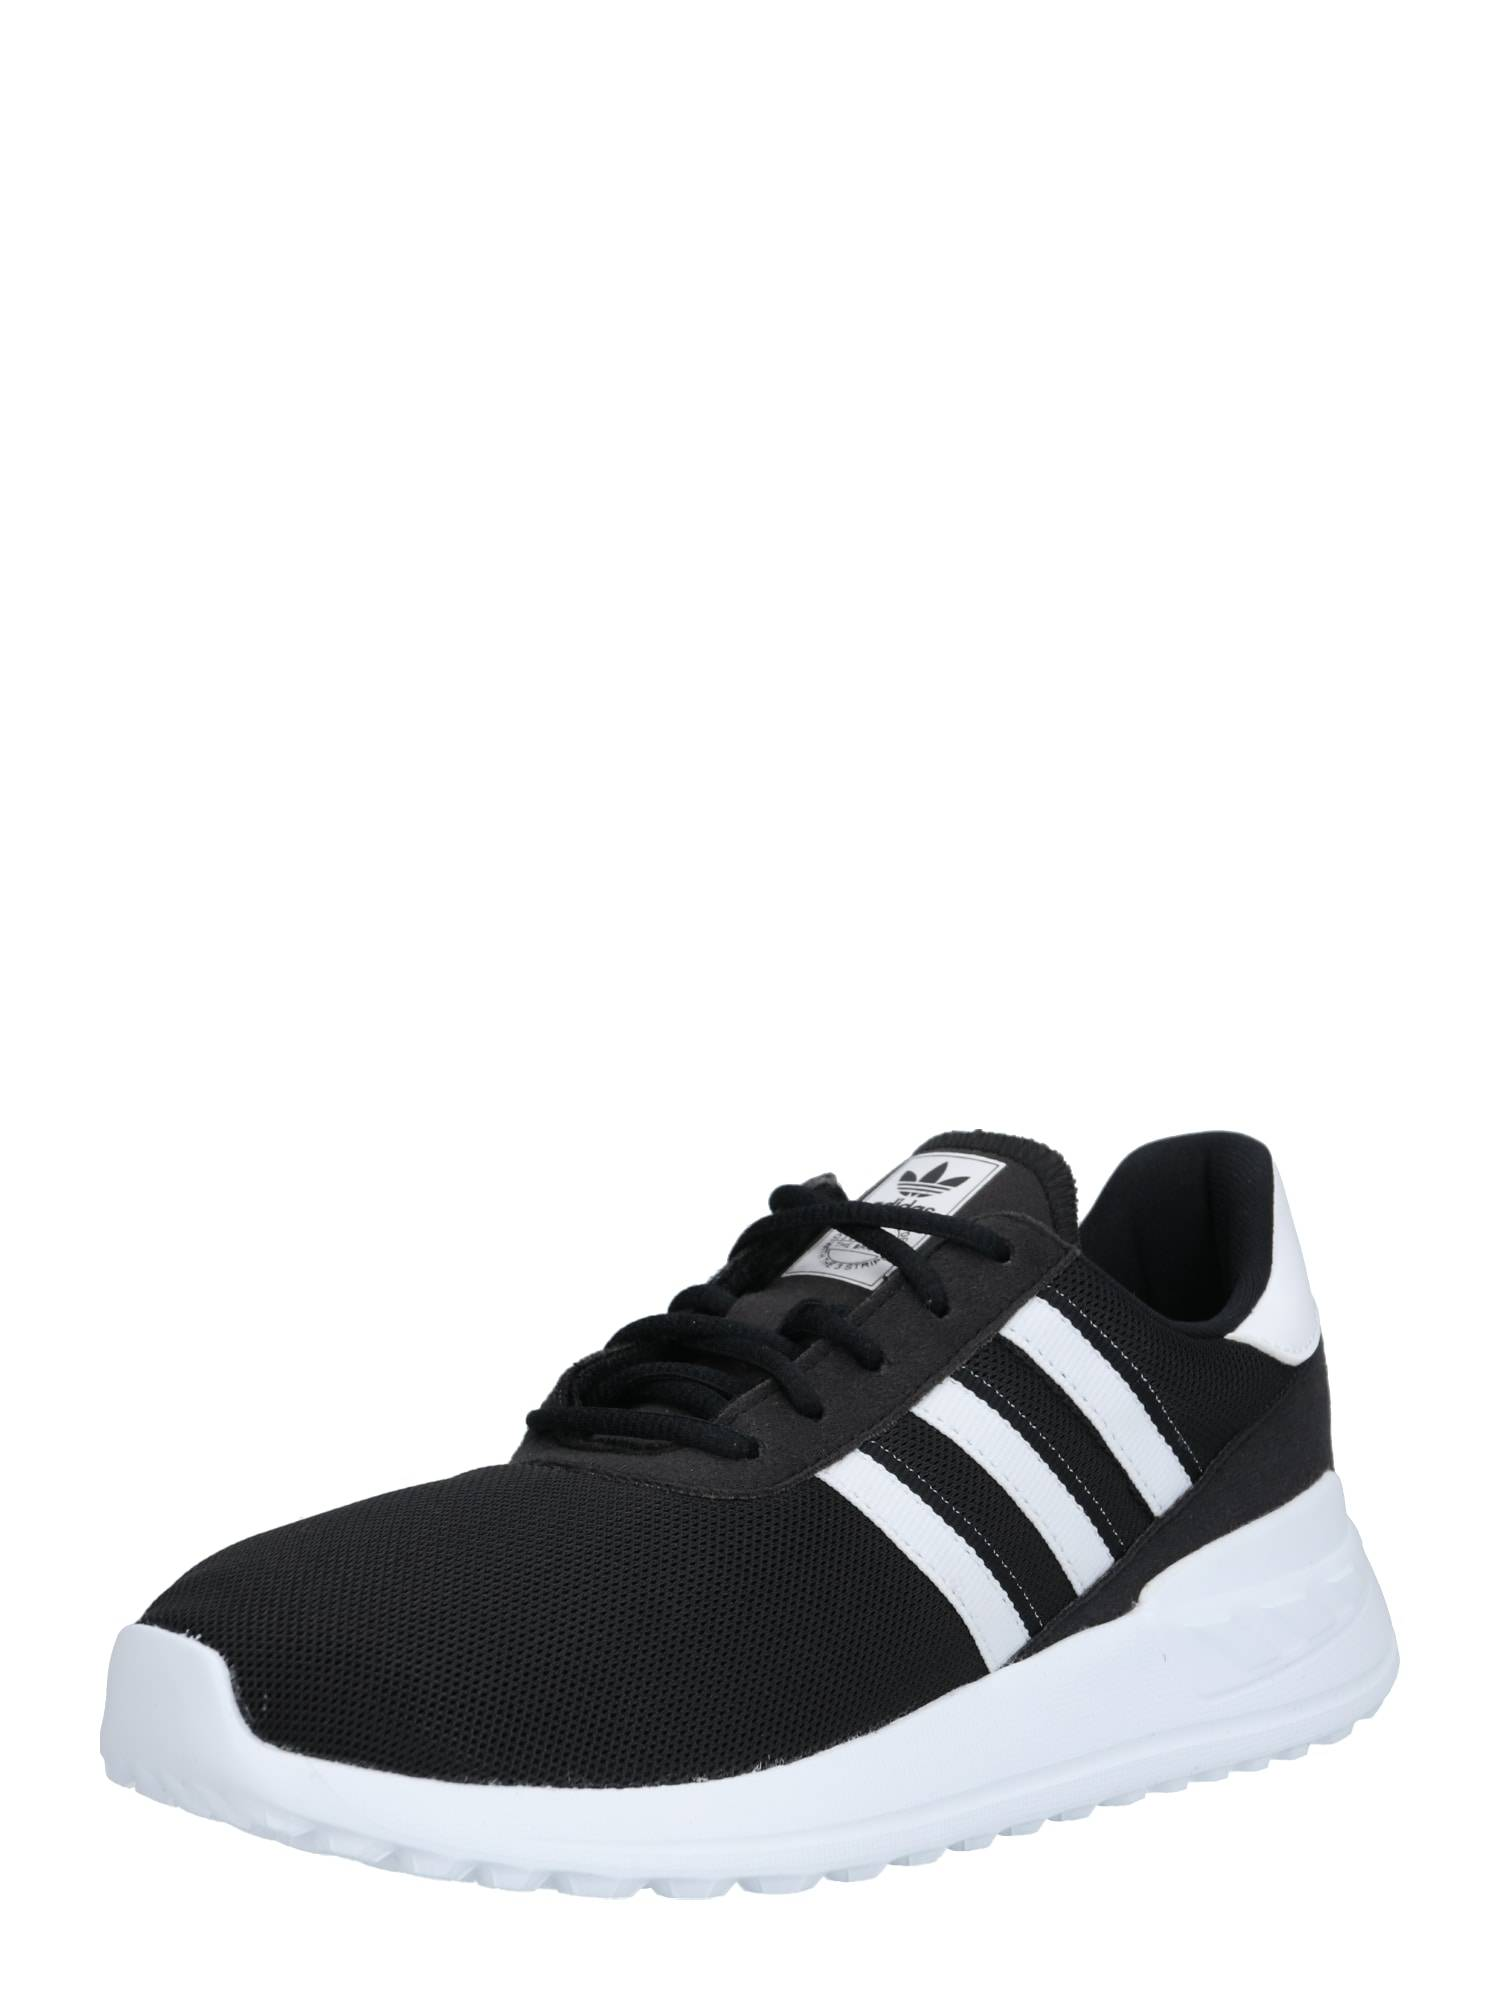 ADIDAS ORIGINALS Baskets 'La Trainer Lite'  - Noir - Taille: 30 - boy